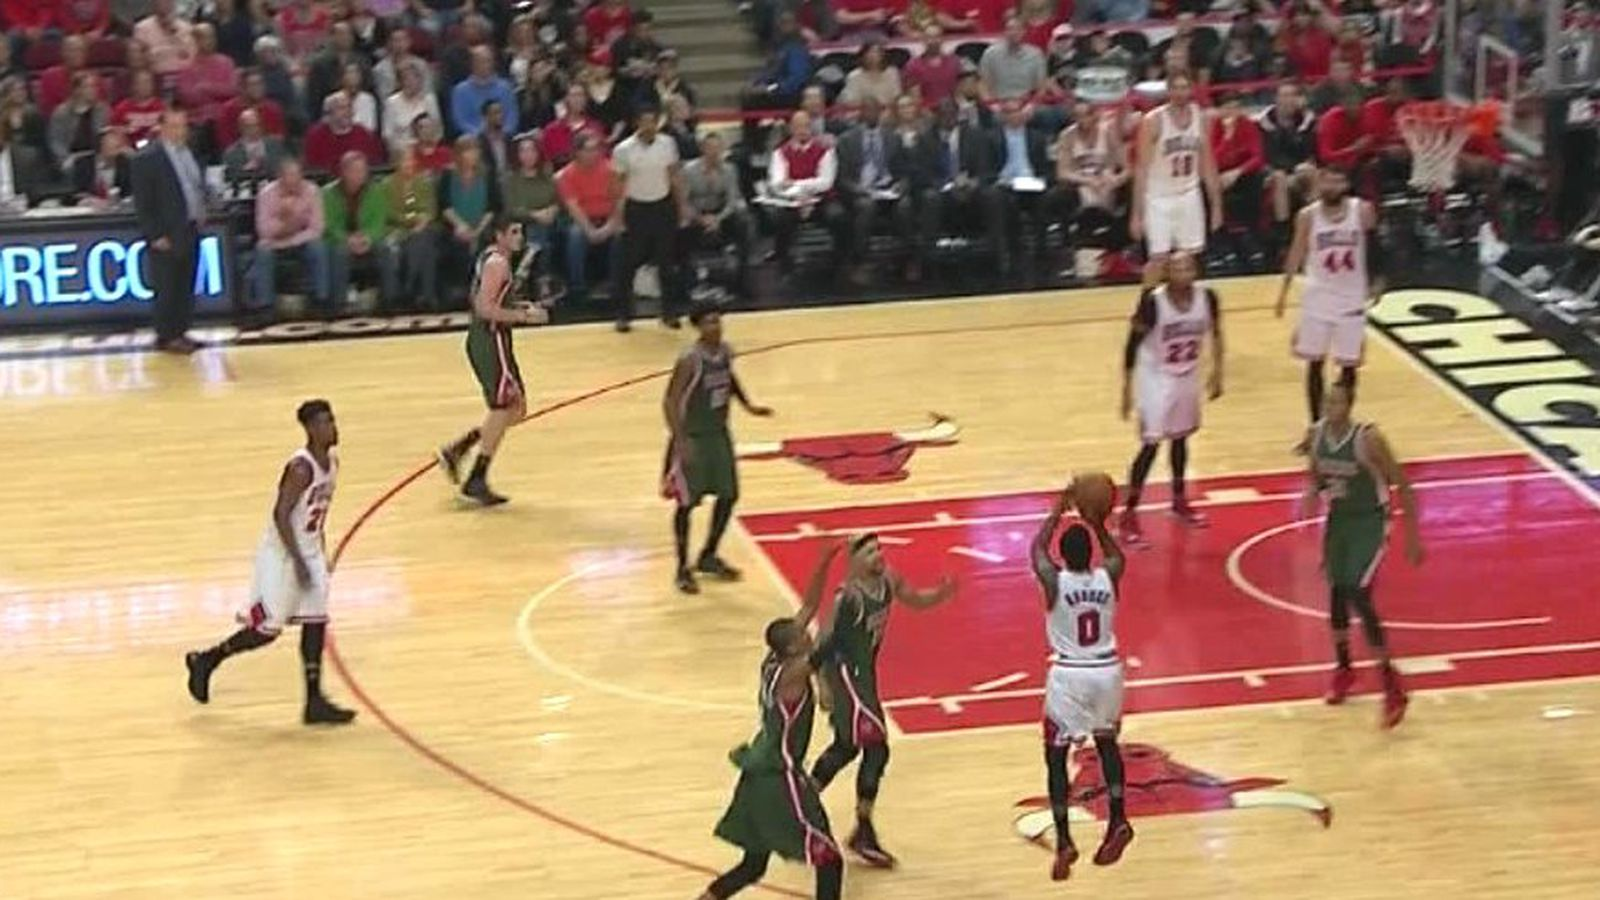 This Aaron Brooks Buzzer Beater Is So Pretty